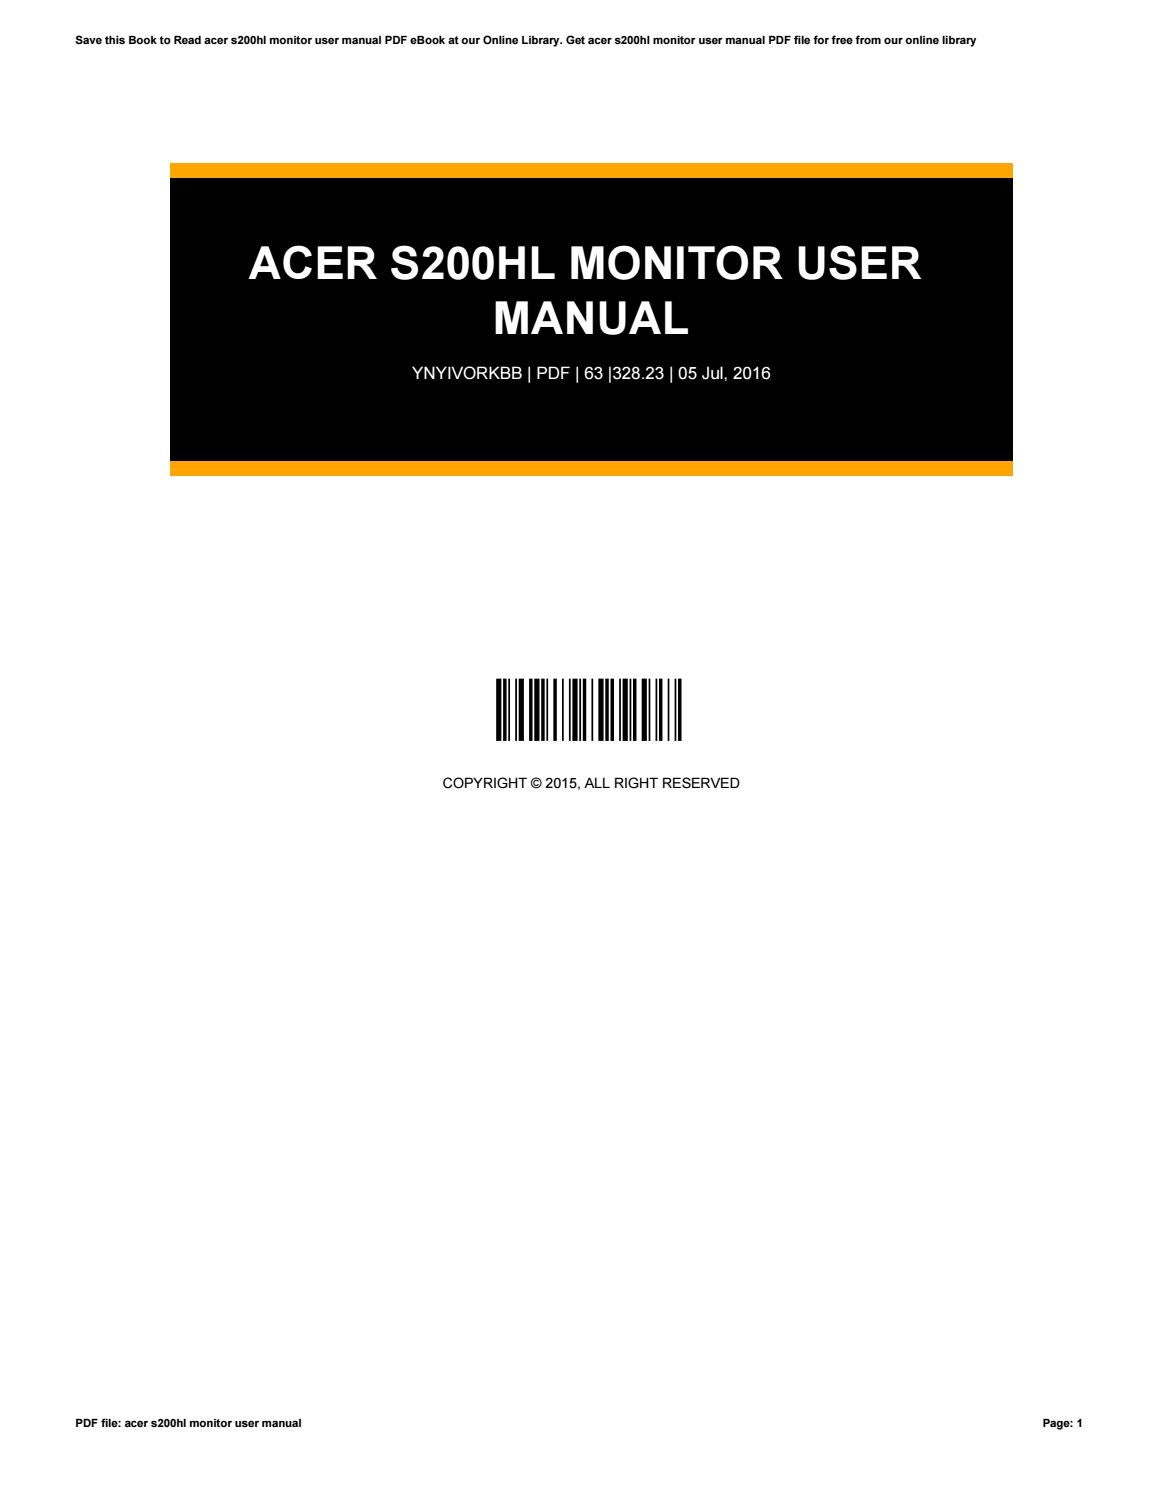 Acer s200hl monitor user manual